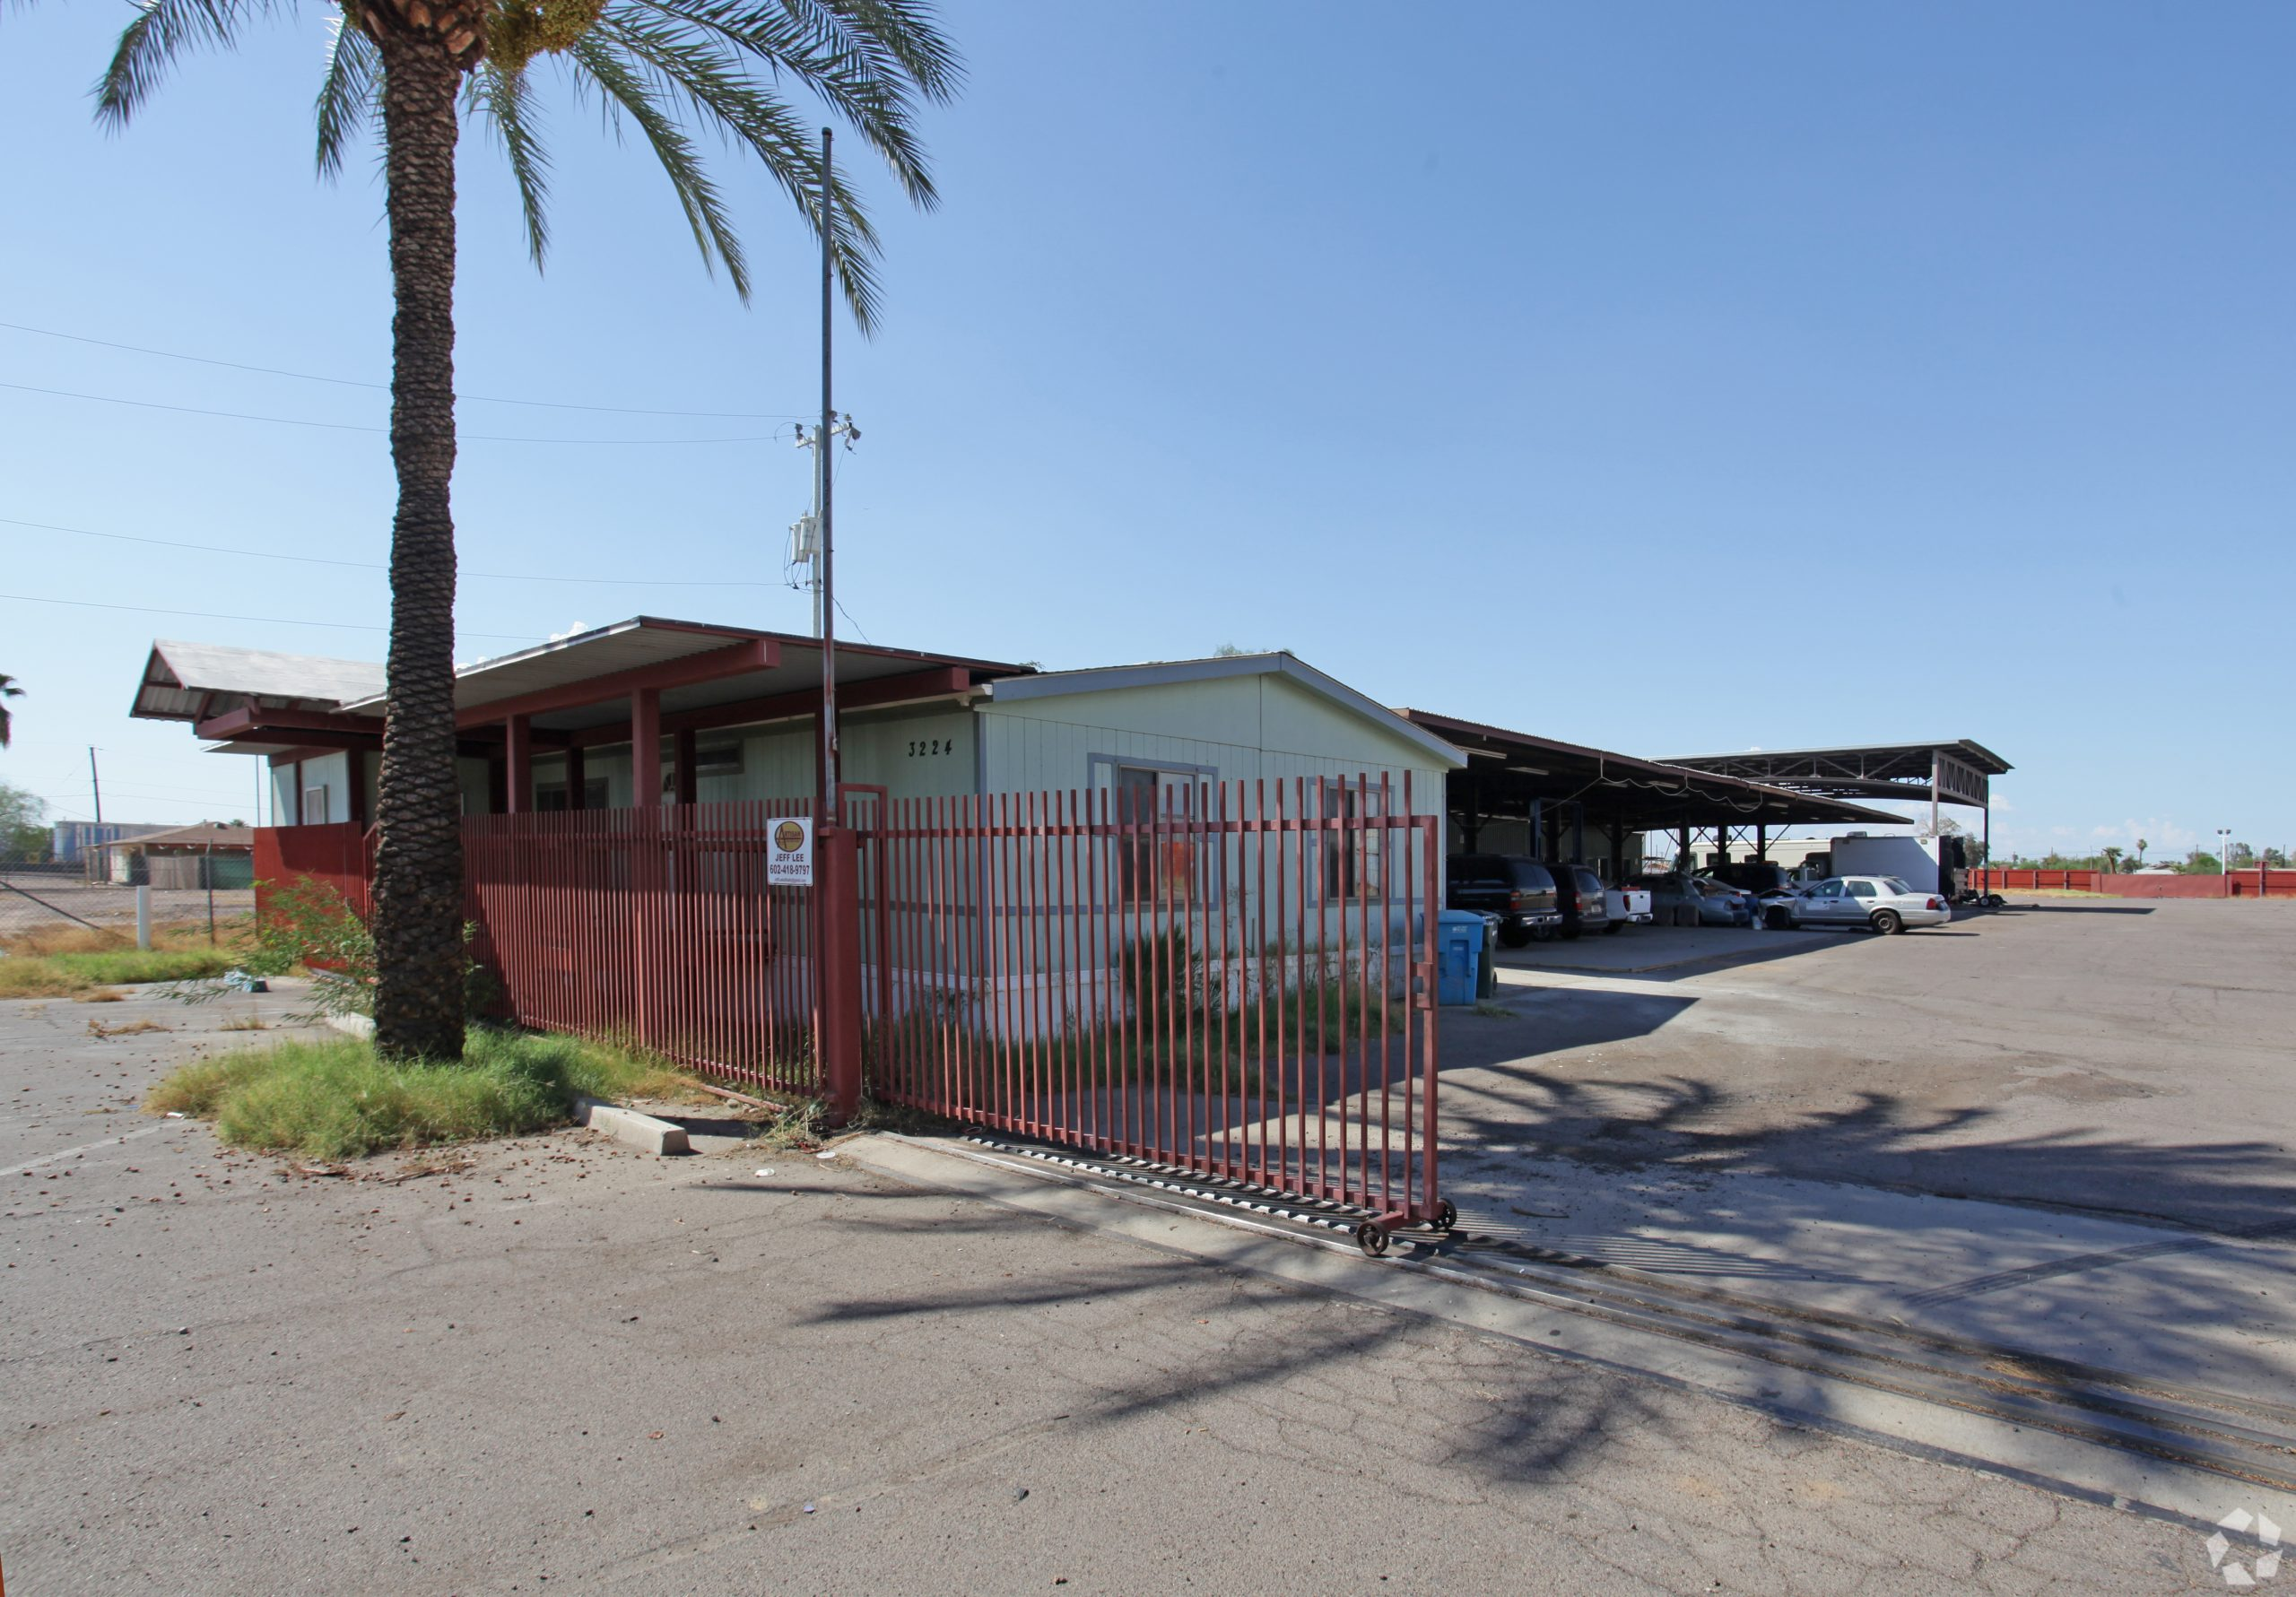 3224 W Lincoln St, Phoenix AZ 85009 Industrial Space